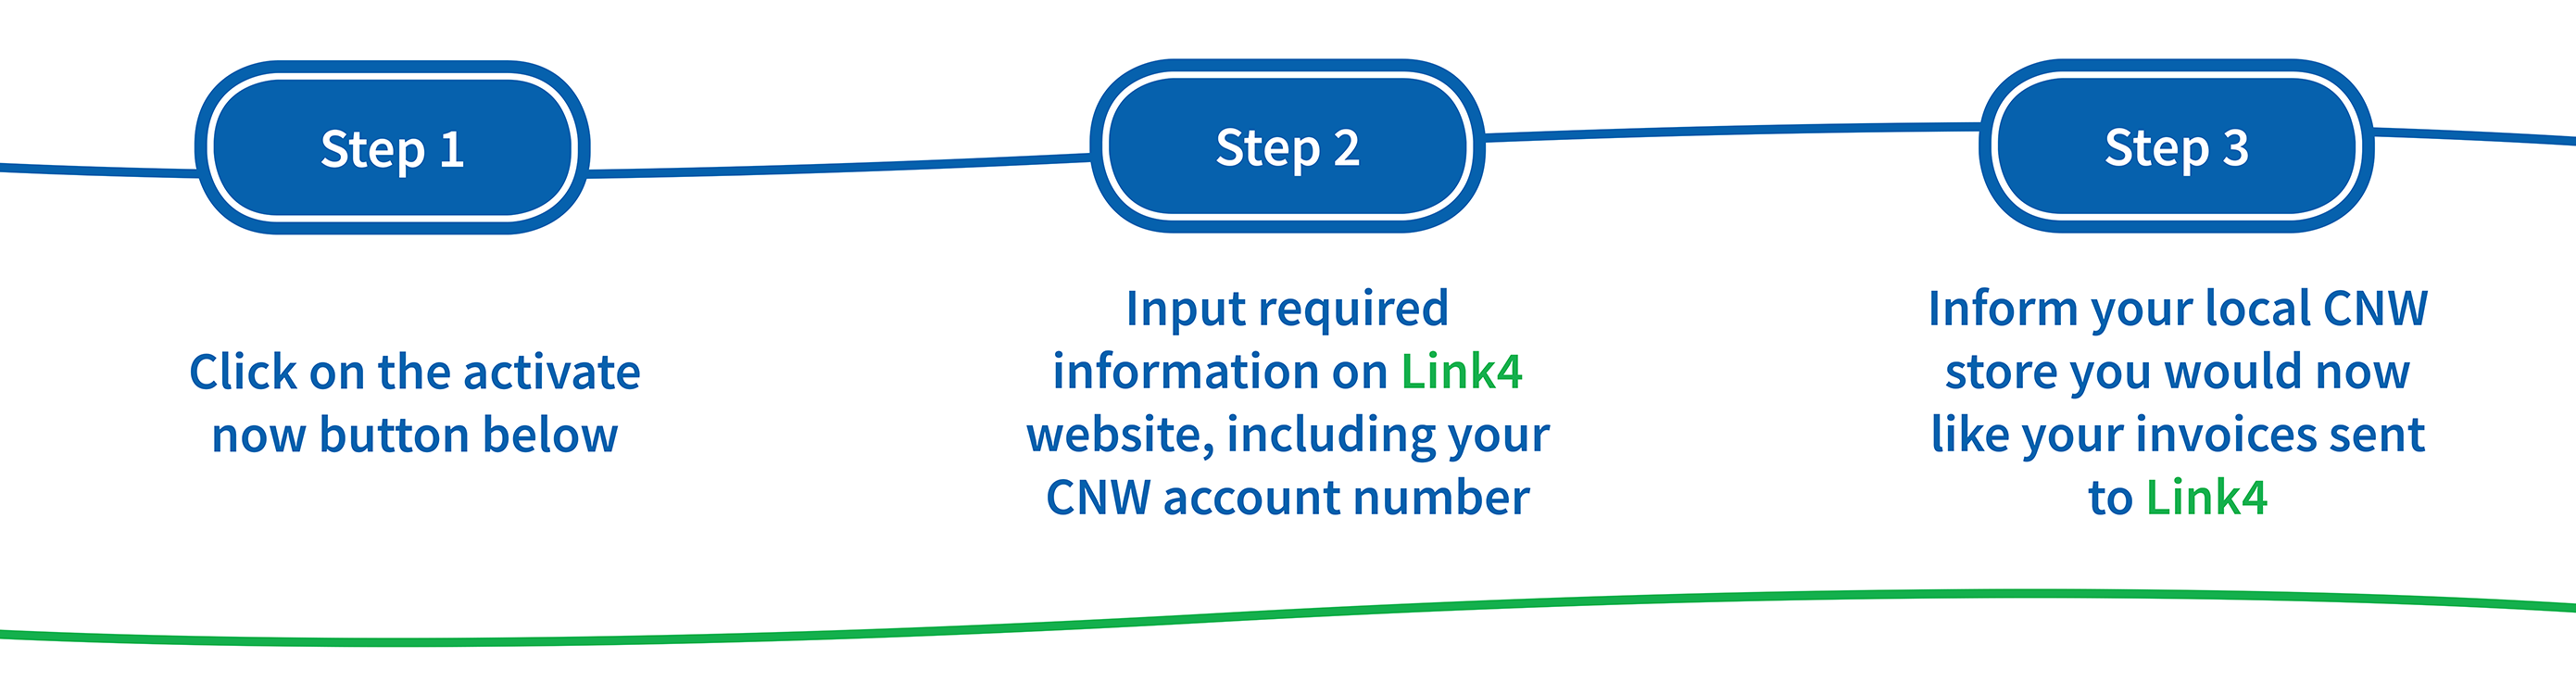 How to Activate Link4